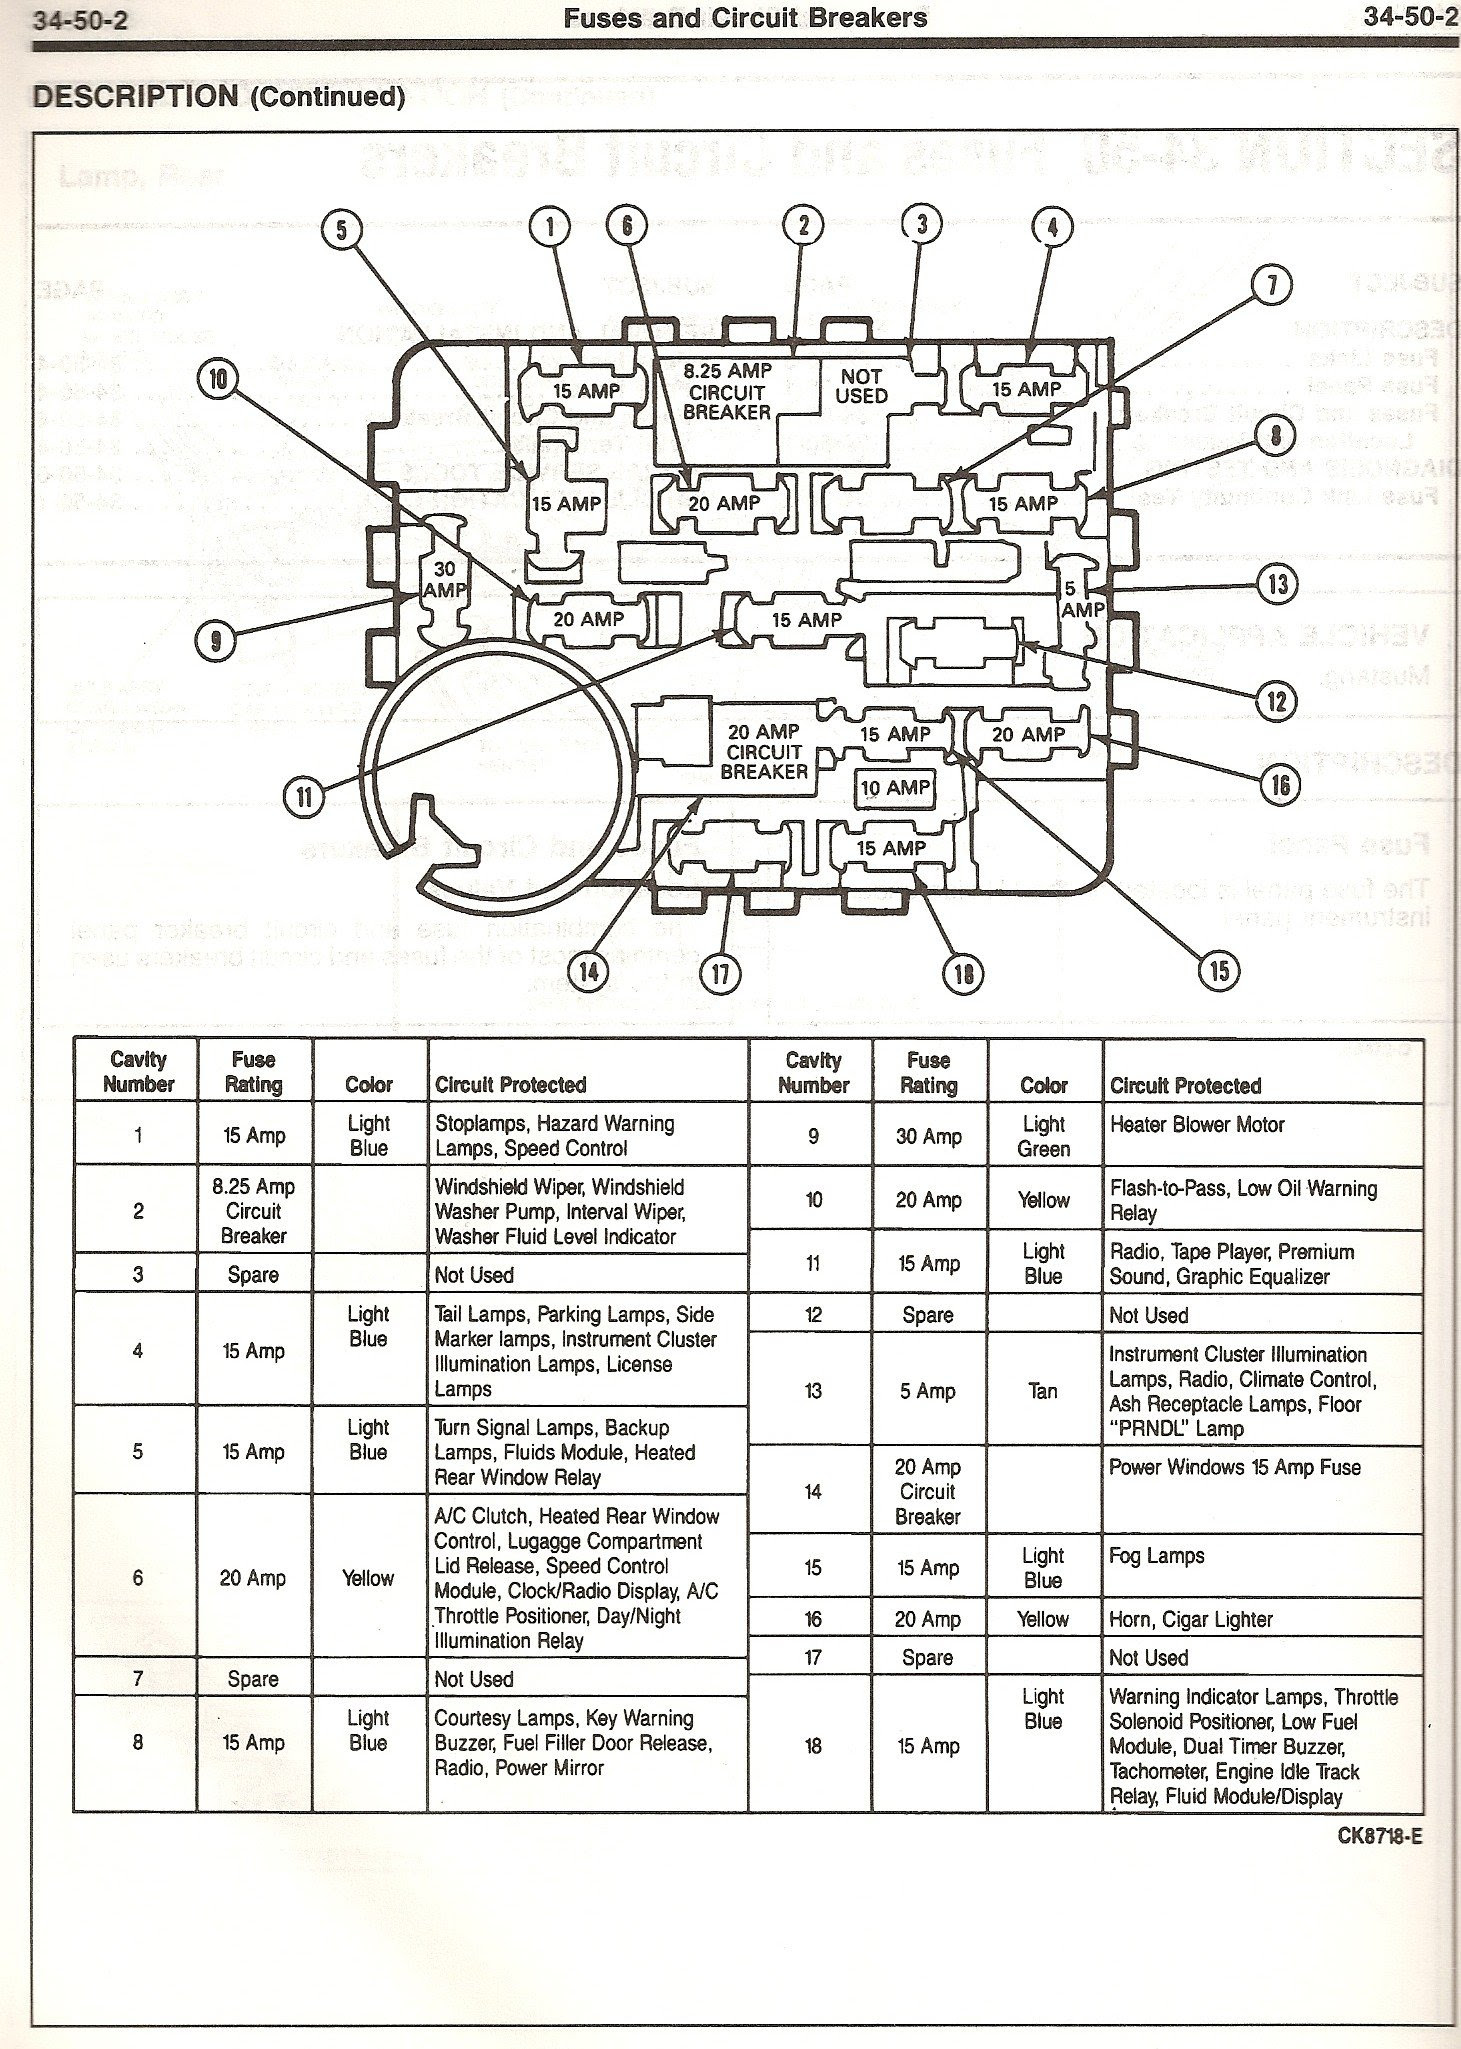 Wiring Diagram: 5 2002 Ford Taurus Belt Diagram